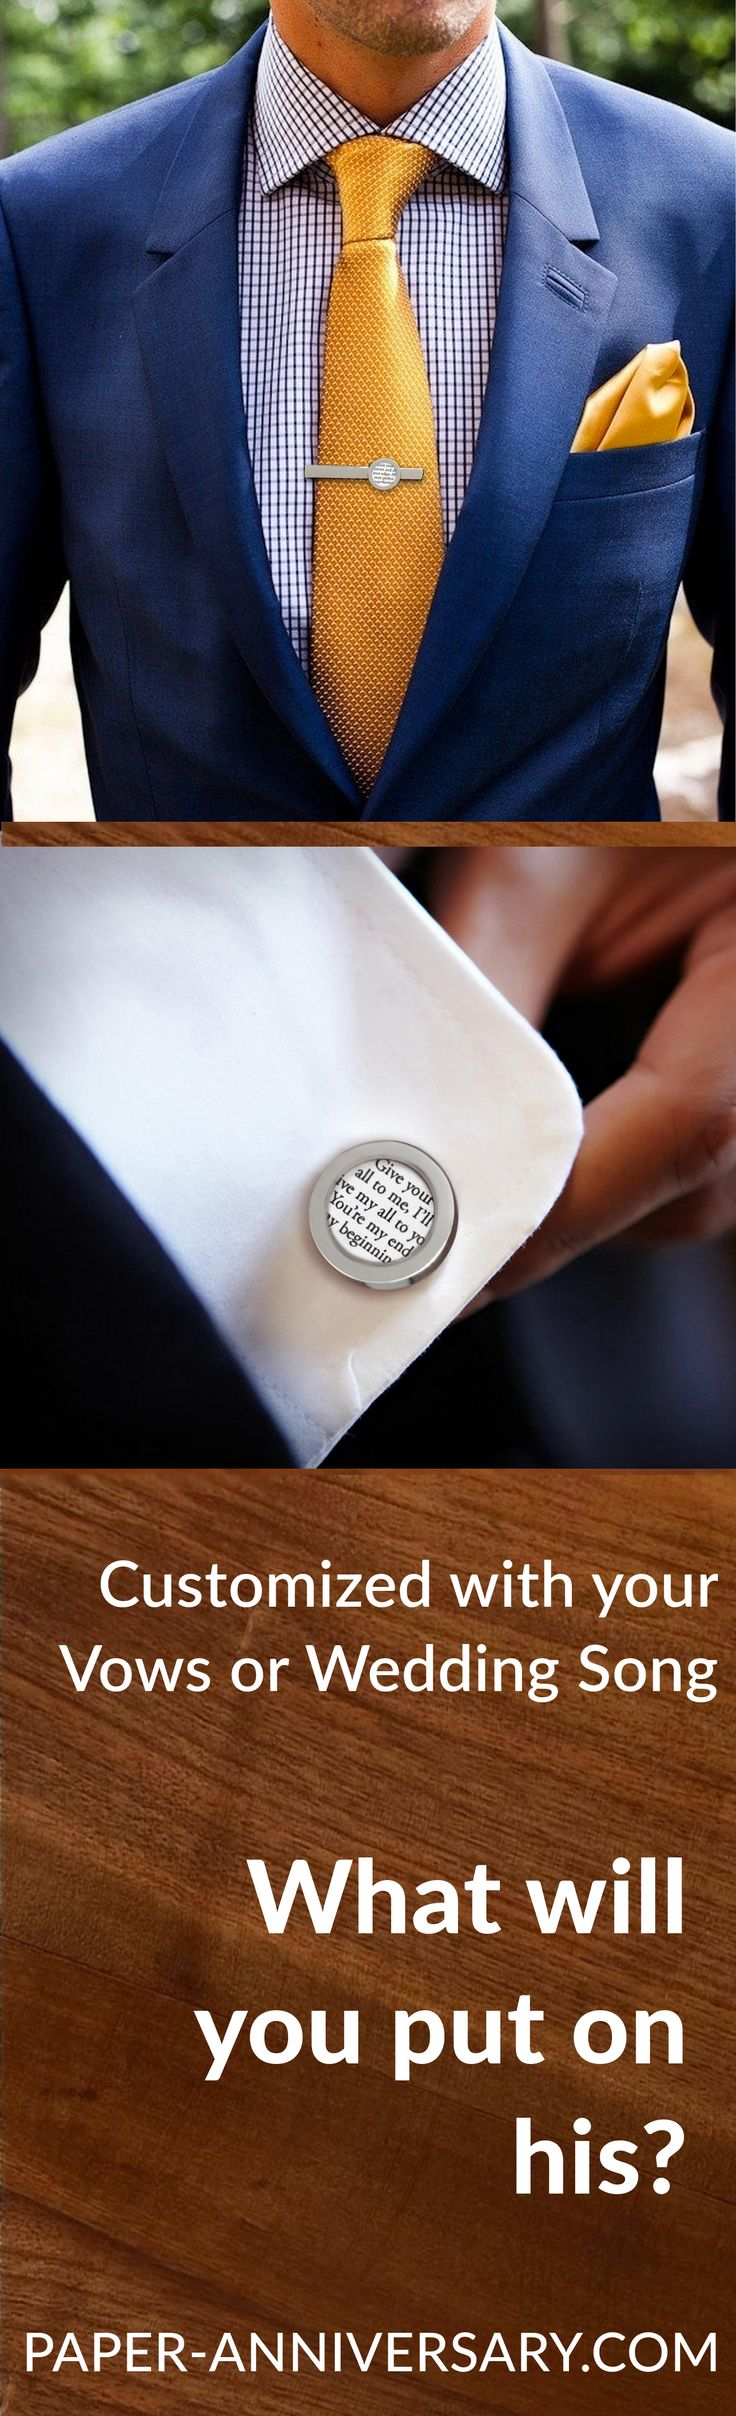 What a timeless anniversary gift for him- Custom cufflinks & tie clip with your wedding vows or song. Paper Anniversary® by Anna V will work with you to create this sentimental gift that your husband will keep forever. Design his gift today and get FREE customization!